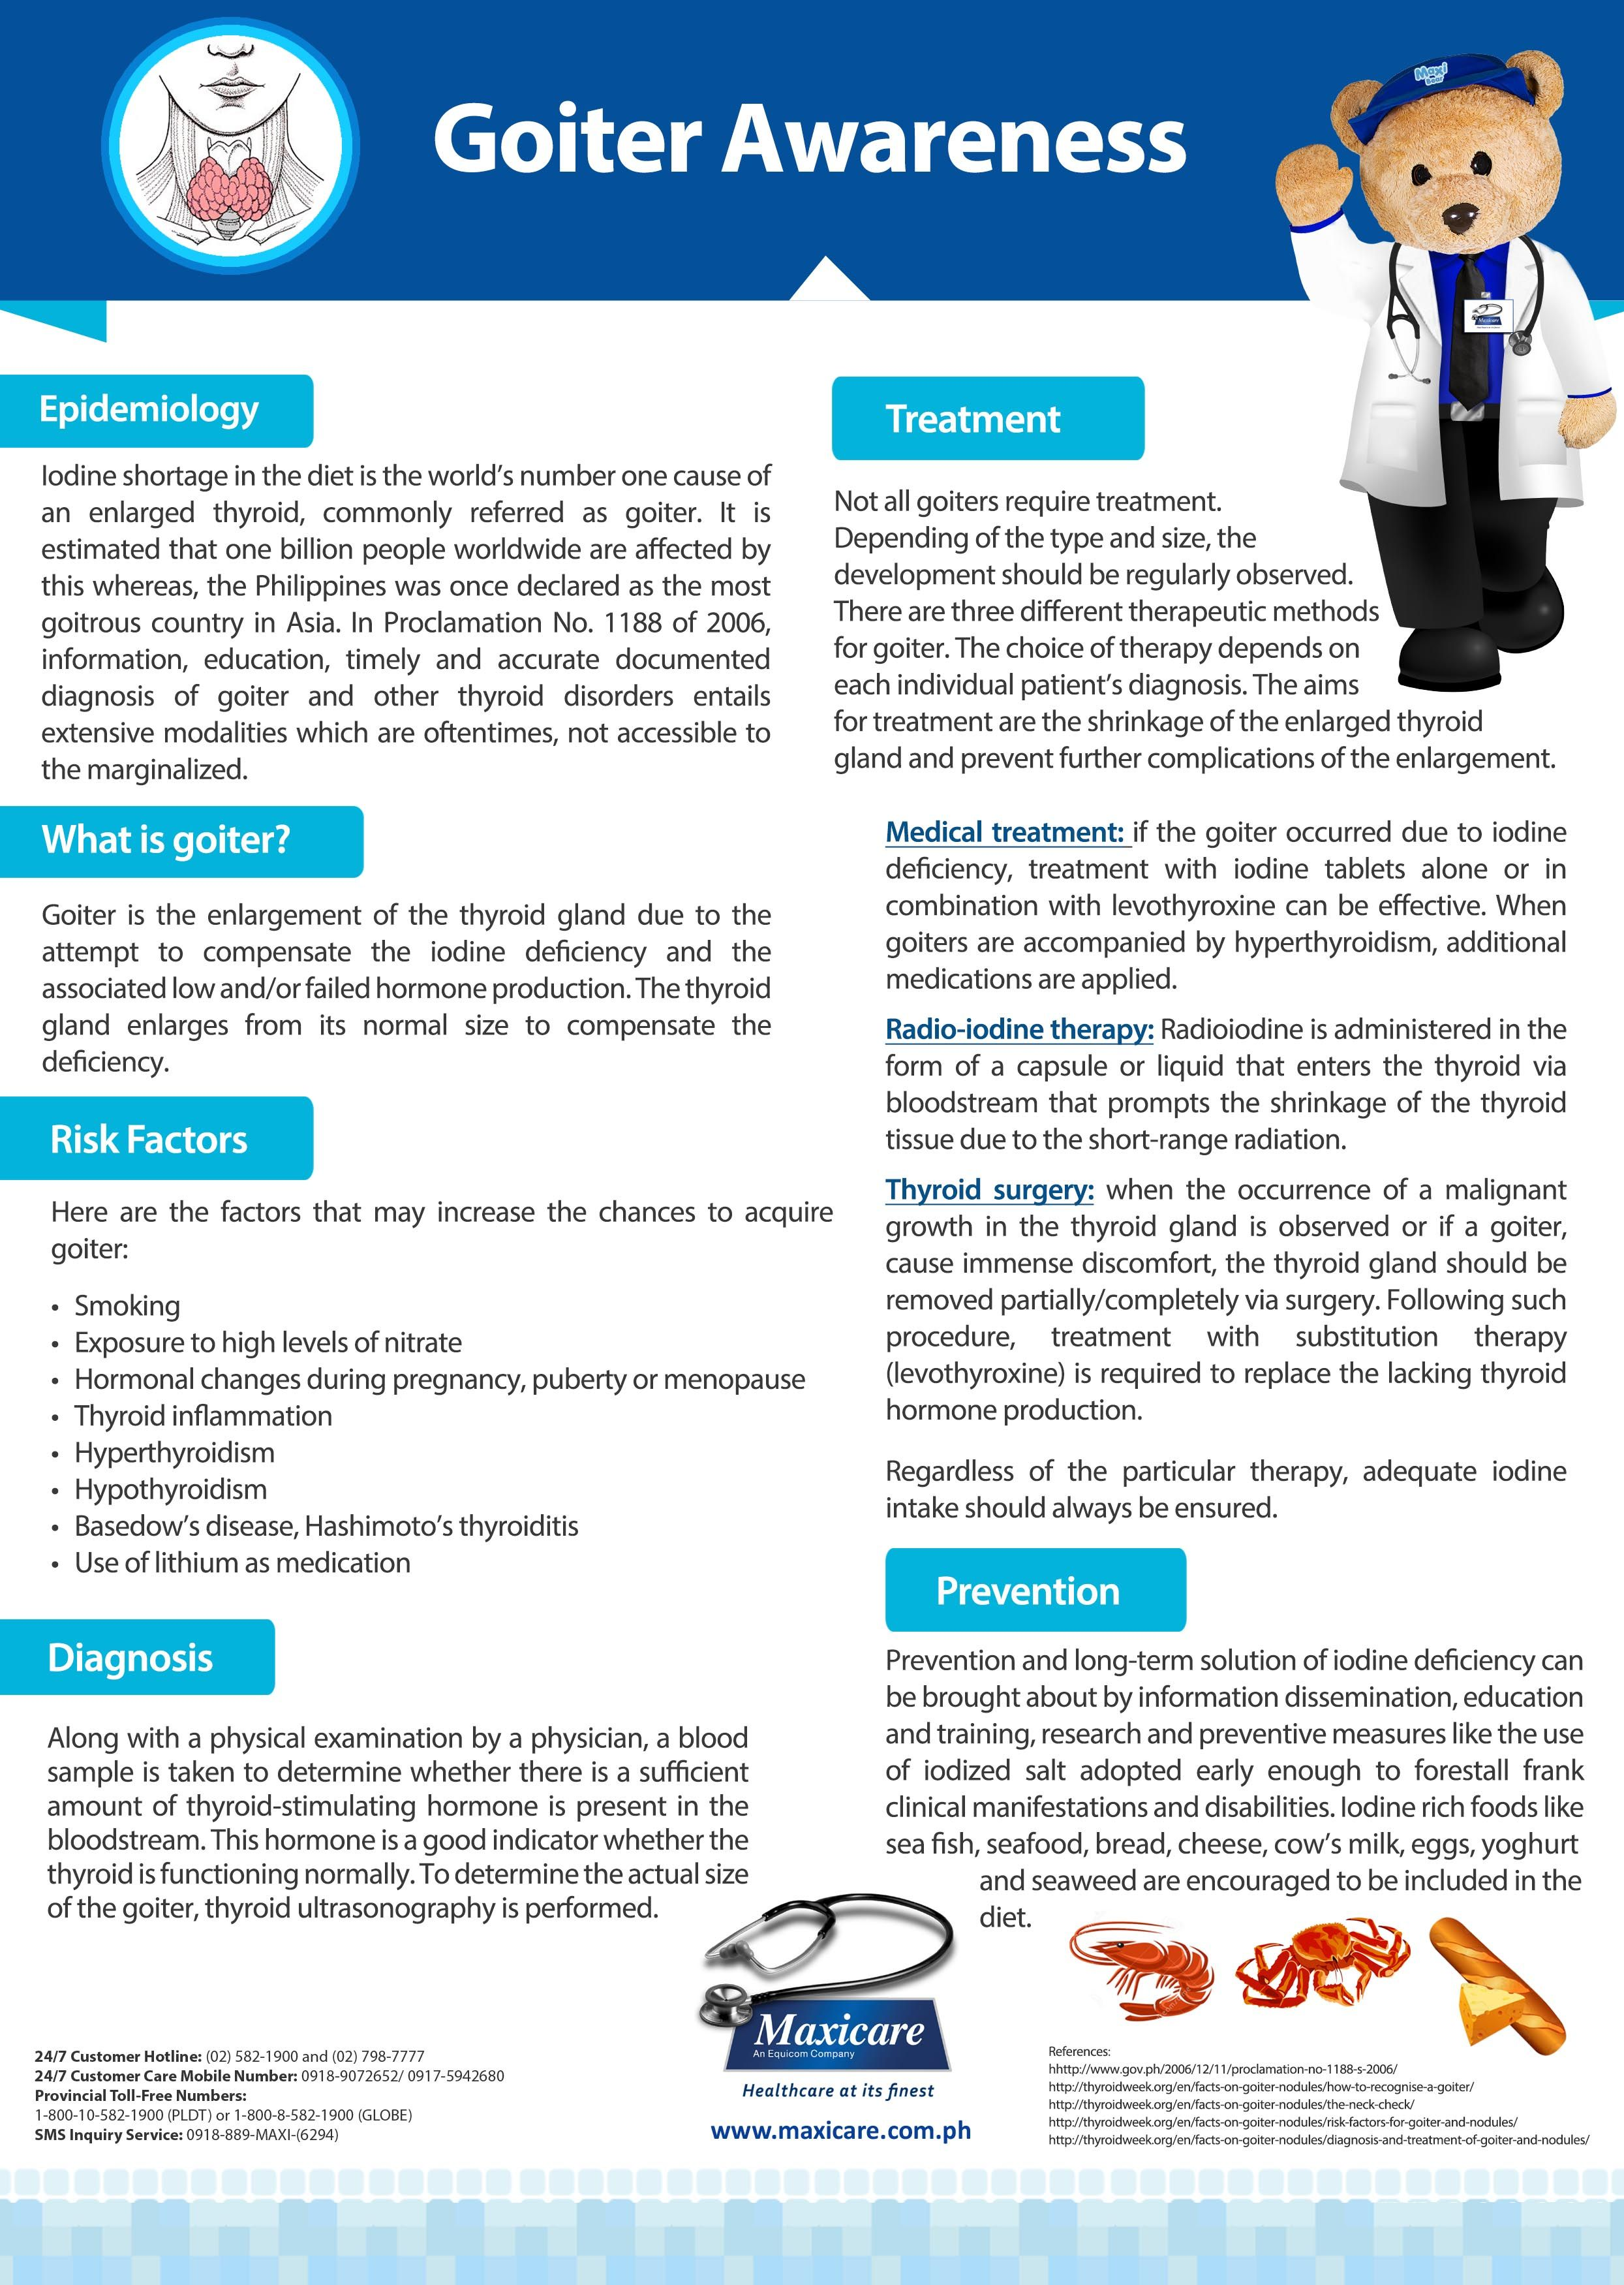 Goiter Maxicare Infographic Enlarged thyroid, Coronary